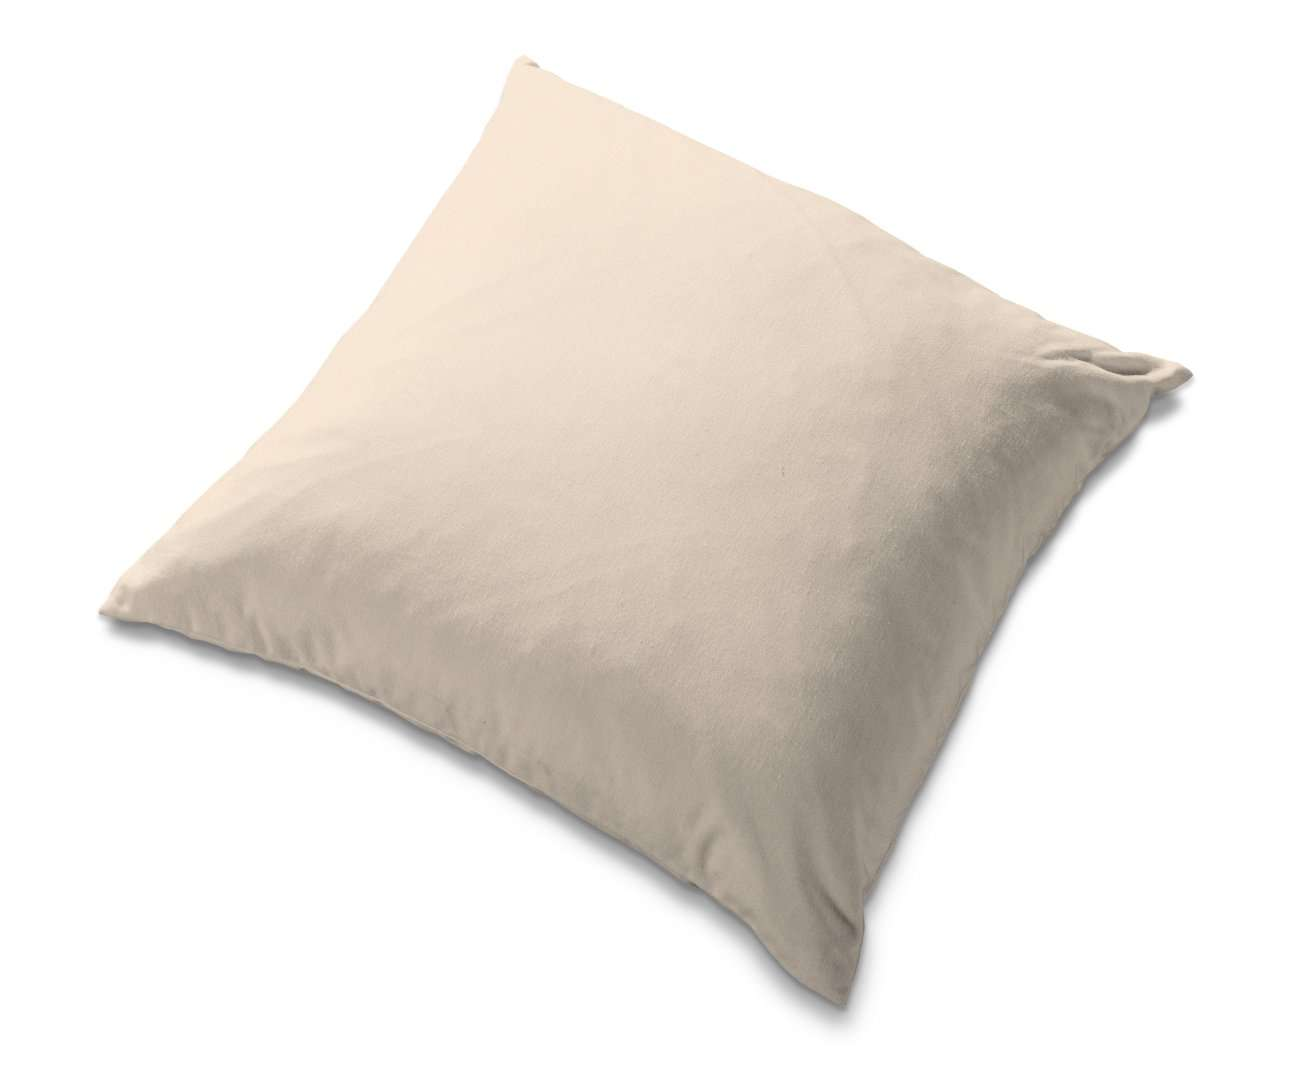 Tomelilla cushion cover 55 x 55 cm (22 x 22 inch) in collection Madrid, fabric: 160-51